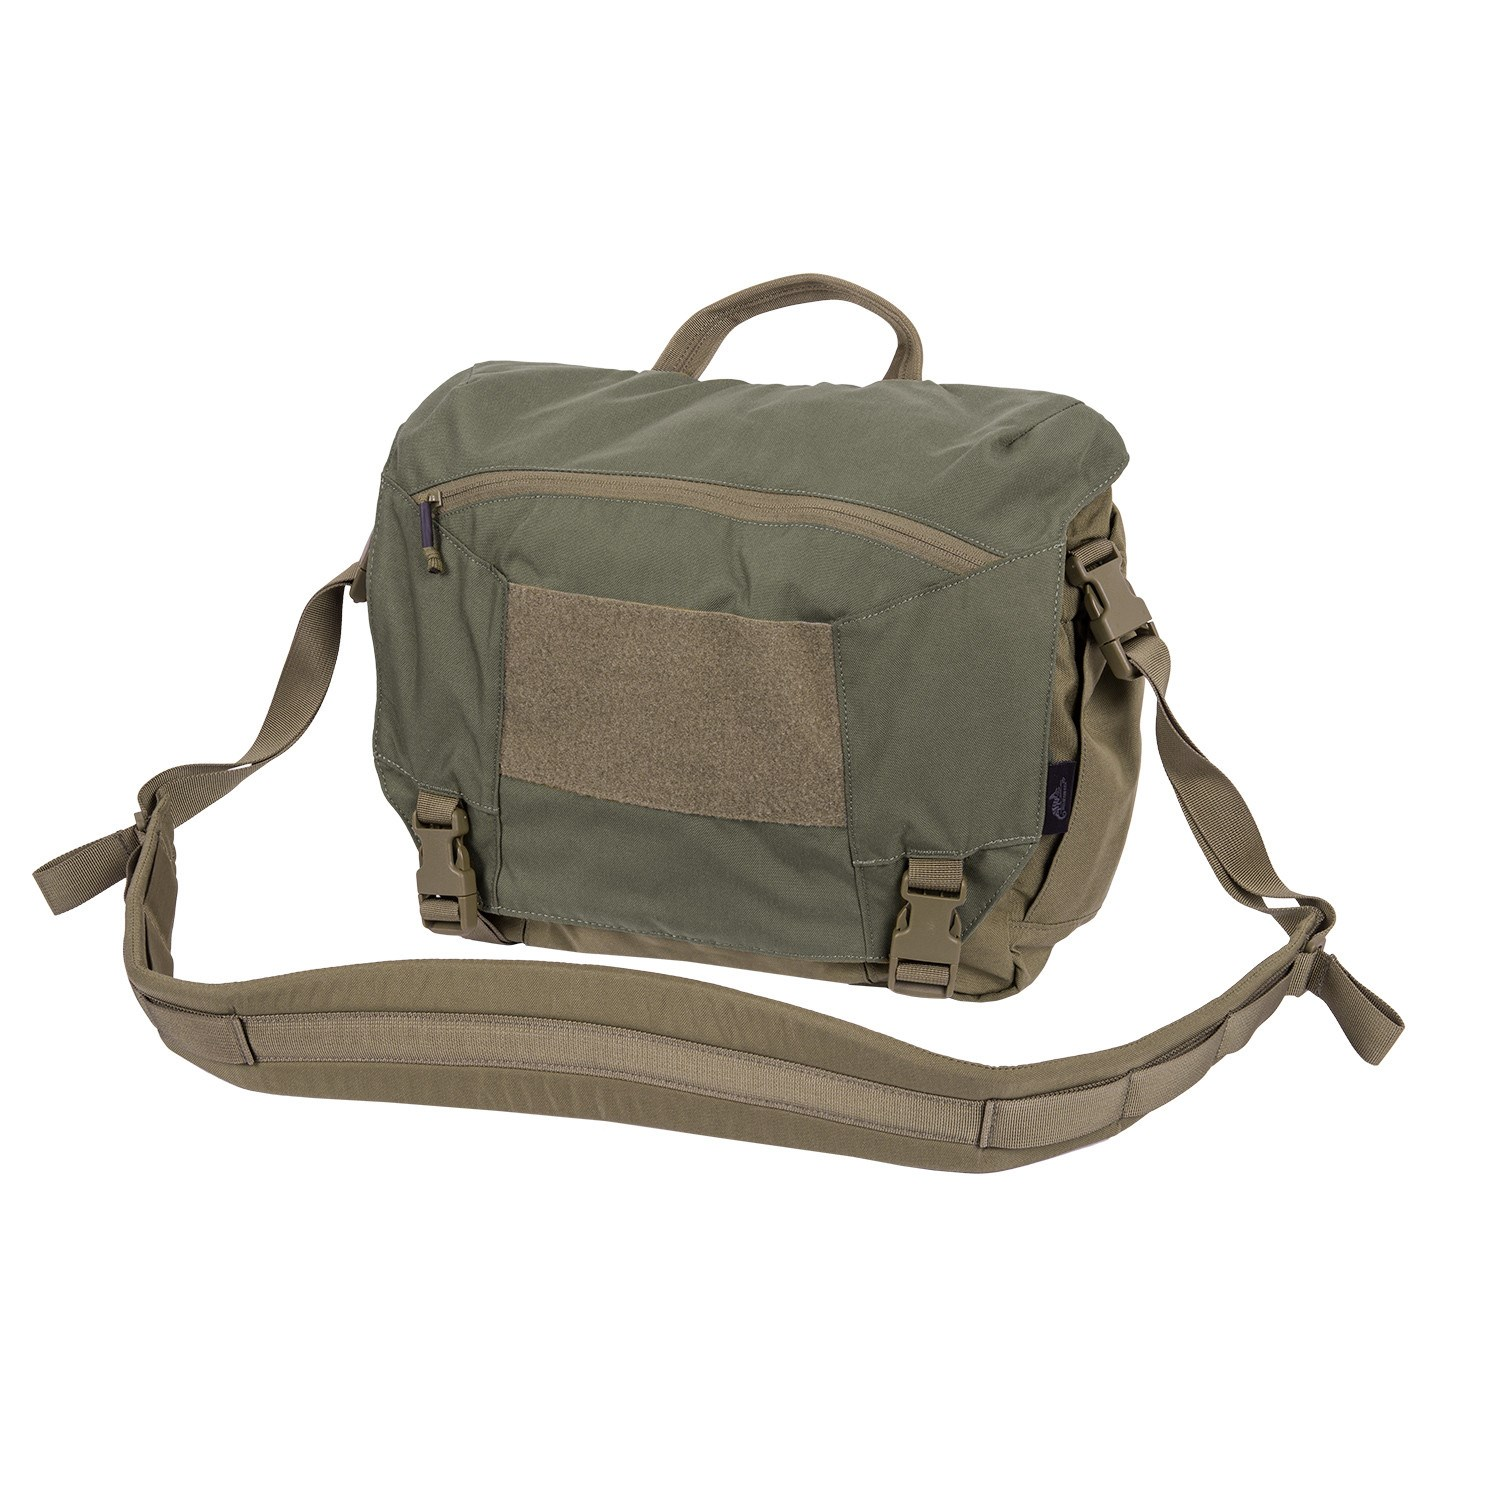 Taška cez rameno URBAN COURIER MEDIUM ADAPTIVE GREEN/COYOTE